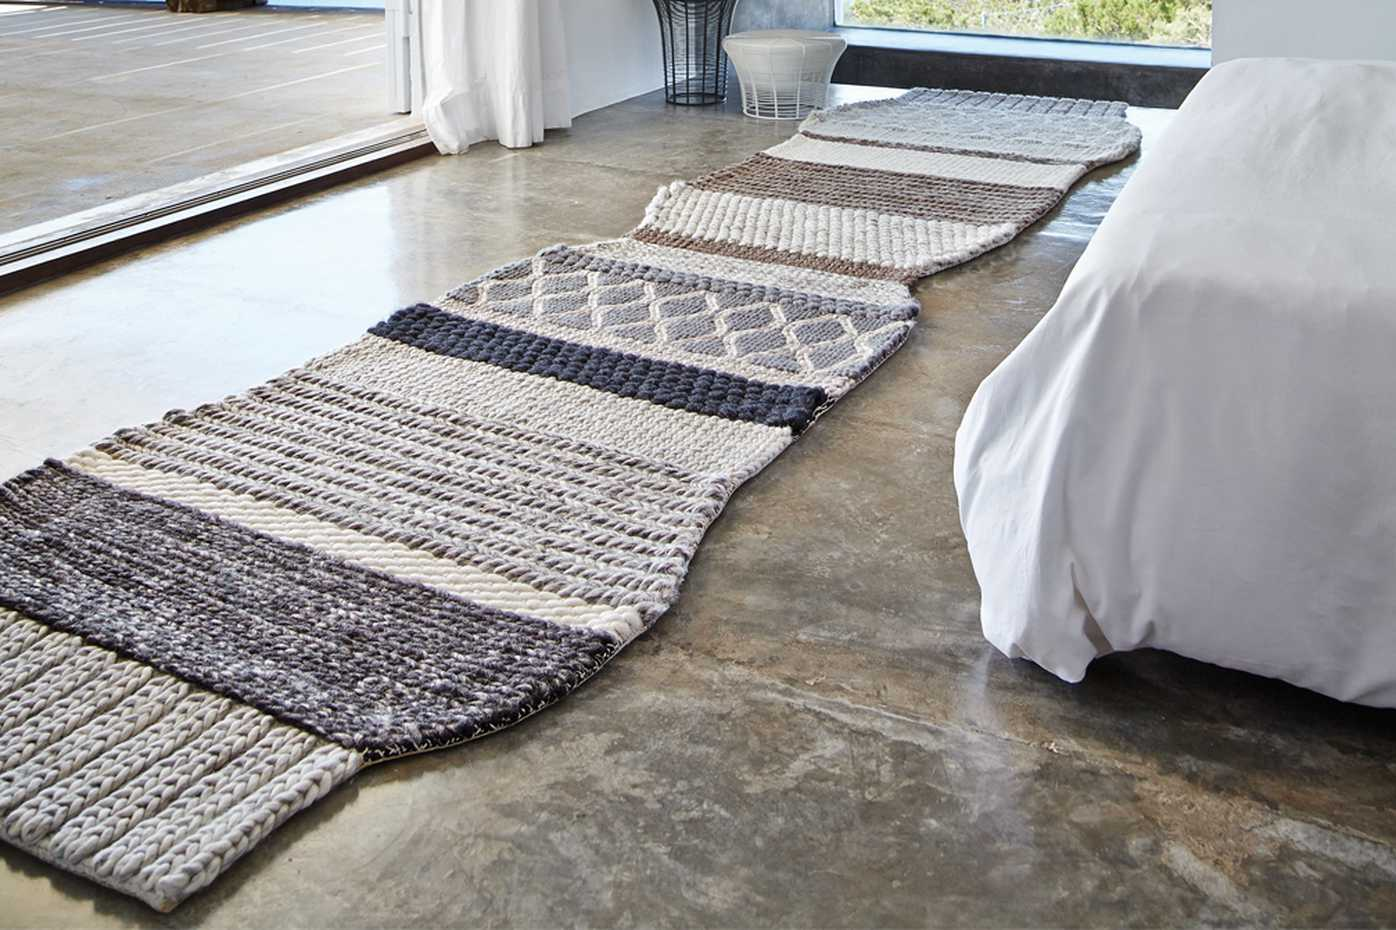 Mangas Original Rugs by Gan Rugs product image 5